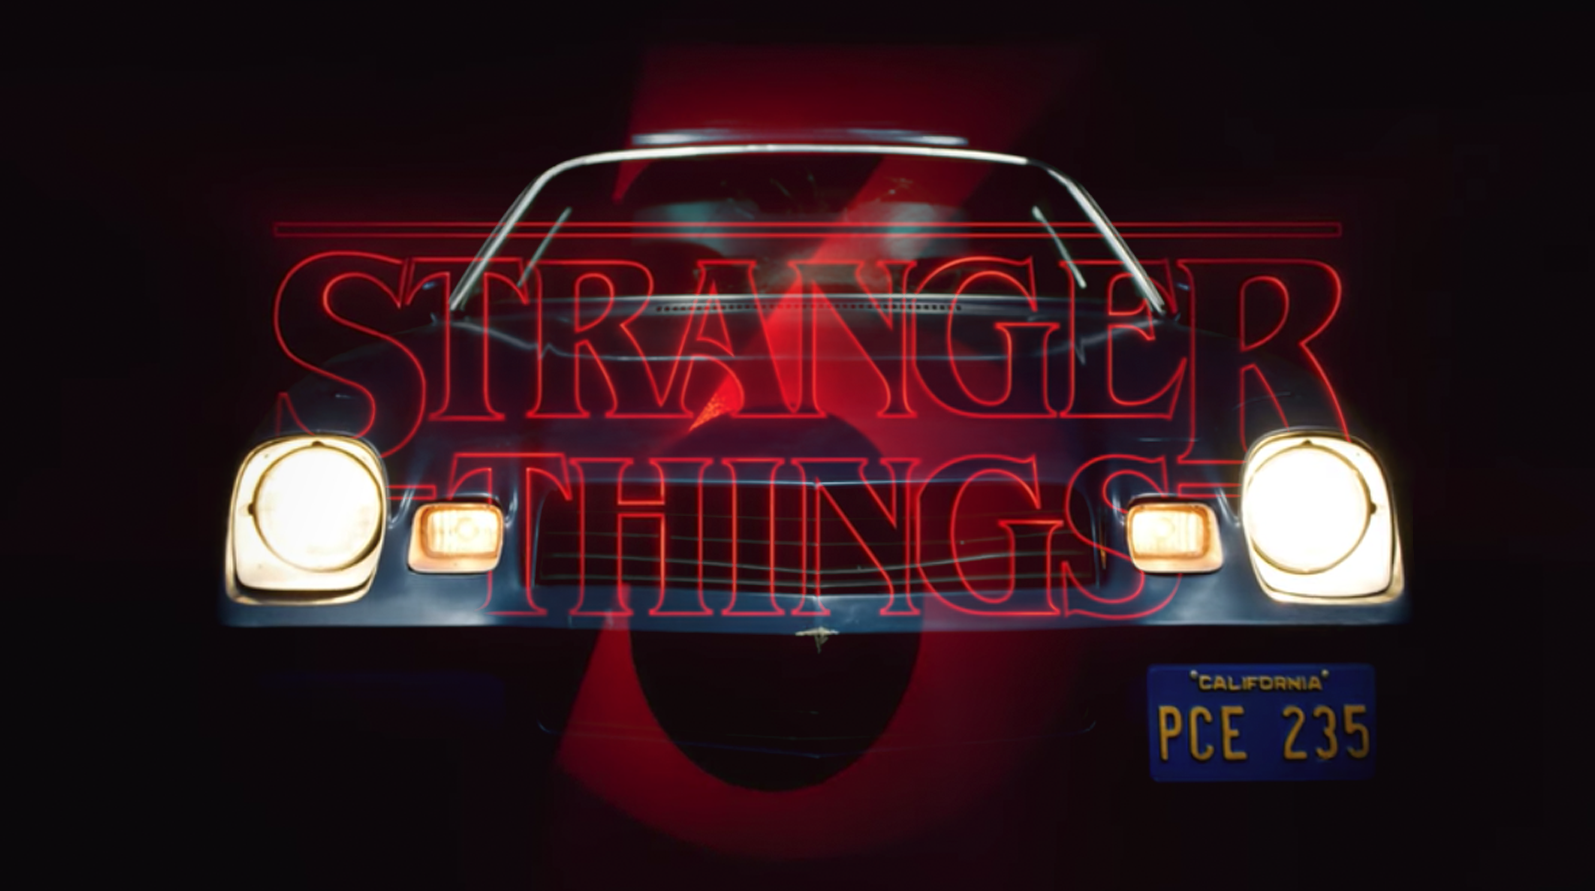 The Cars Of Stranger Things Season 3 Keep A Great Car-Casting Streak Going